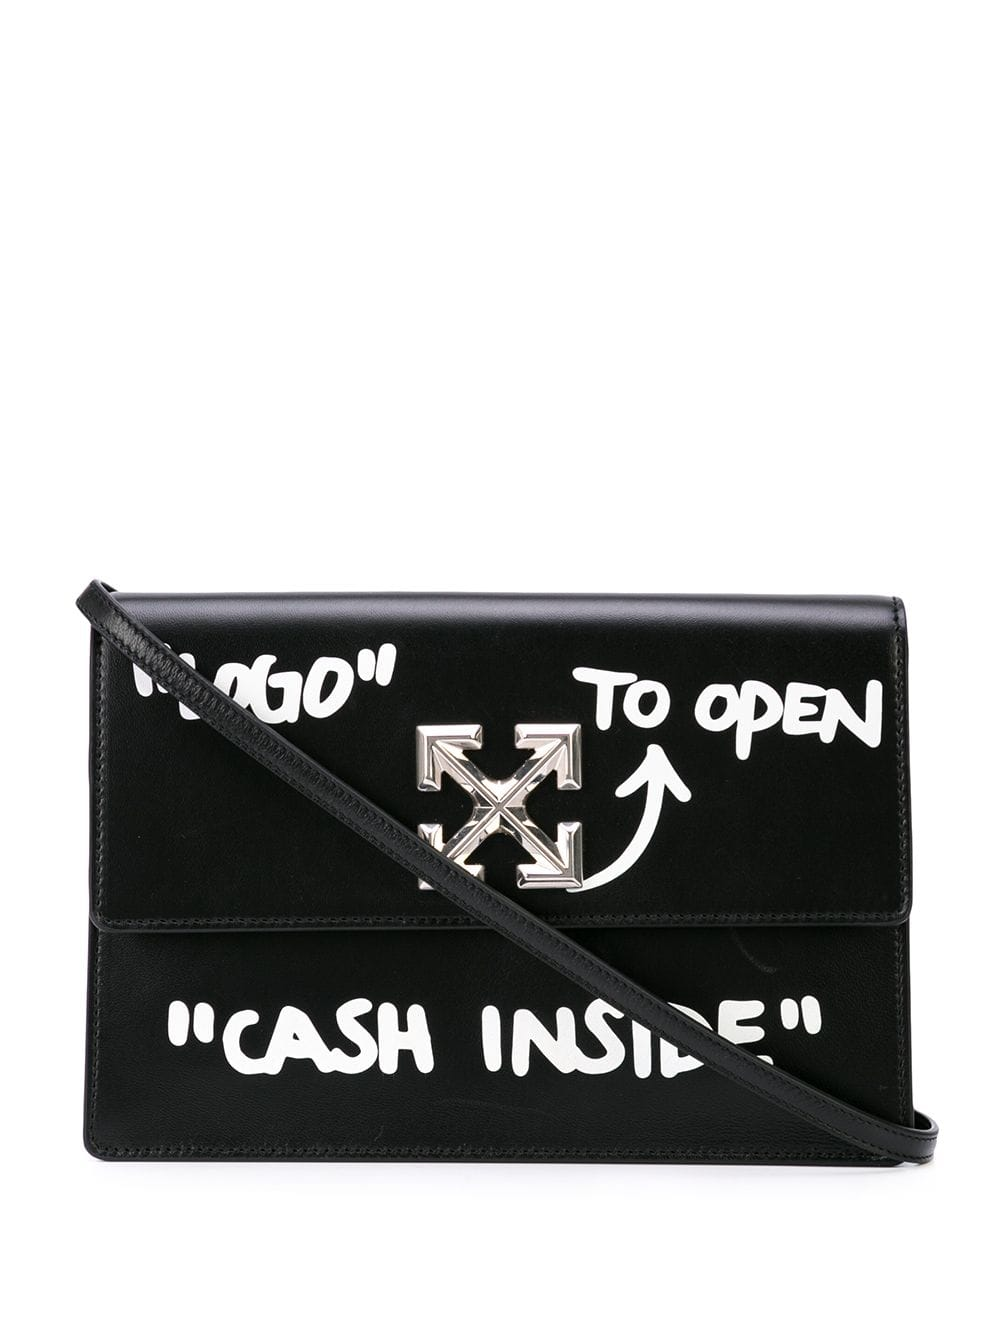 OFF-WHITE WOMEN JITNEY 1.0 CASH INSIDE BAG